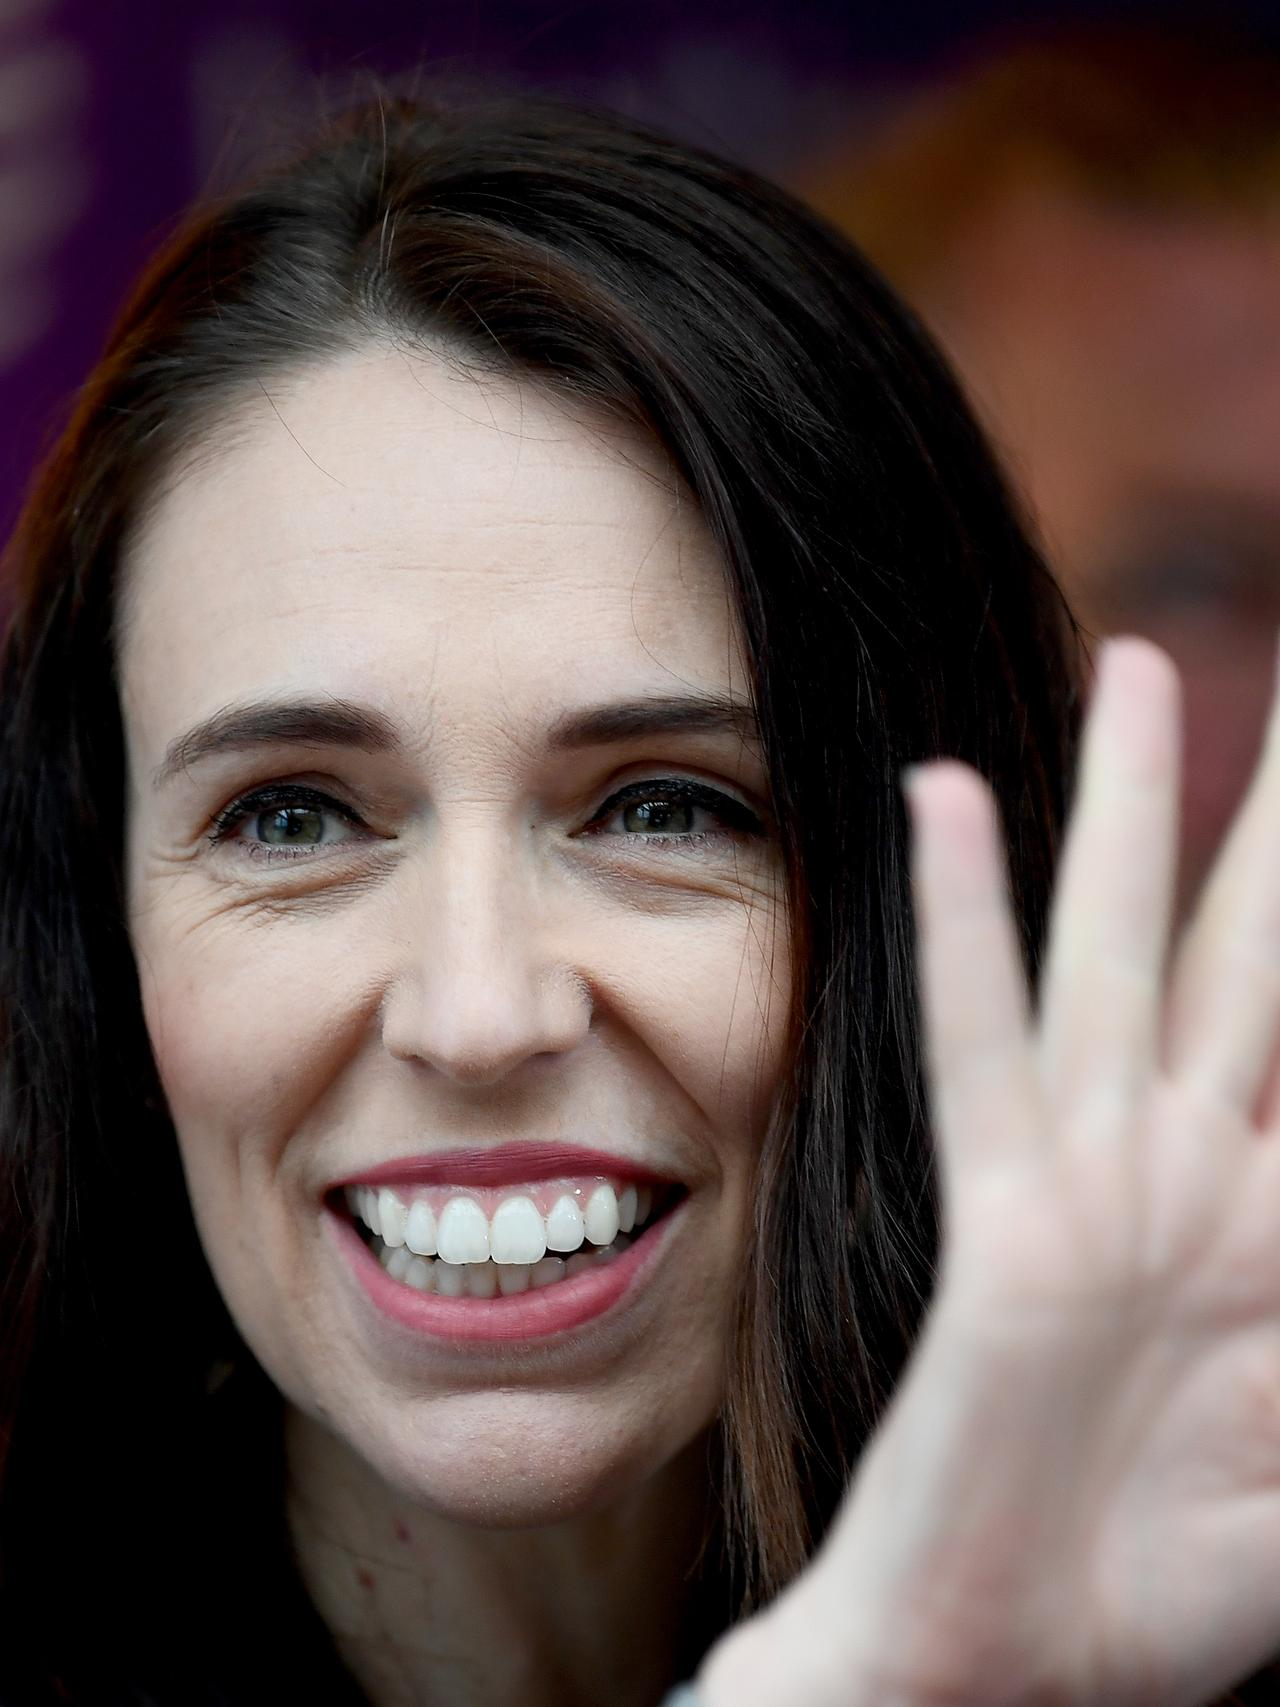 Prime Minister Jacinda Ardern And Labour Party Announcement on Plastics